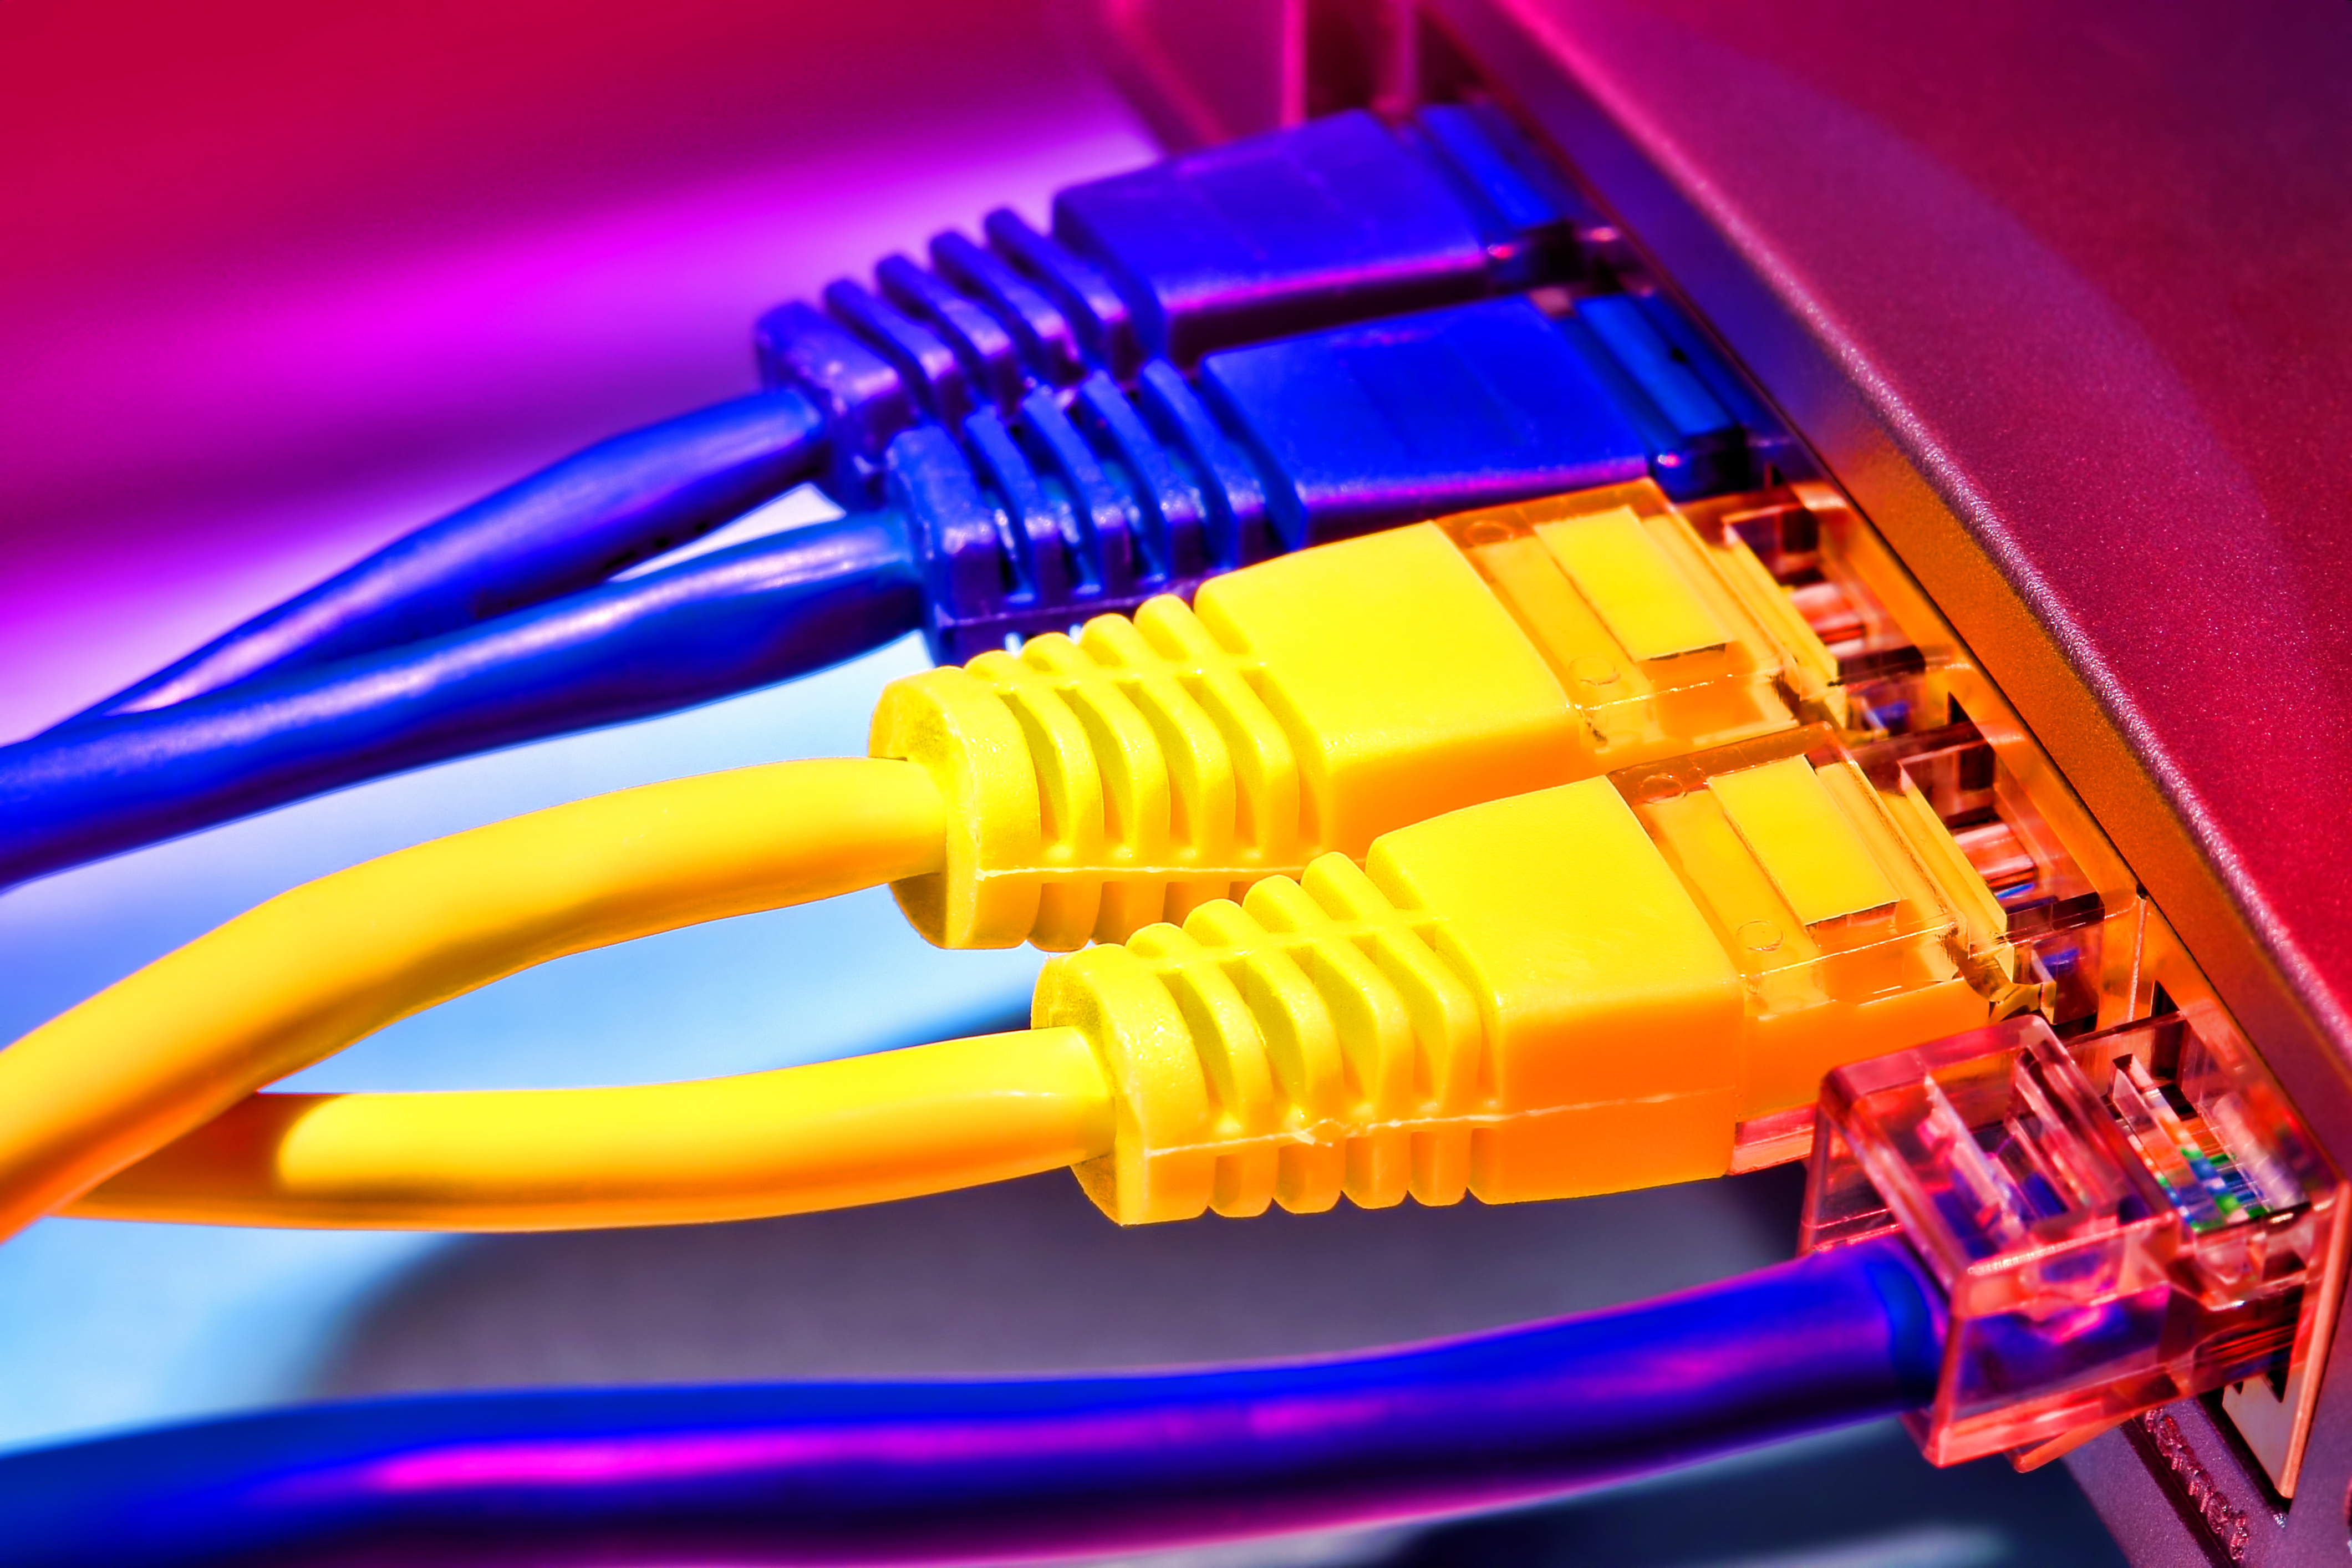 Cape Town to reduce cost of broadband to expand access